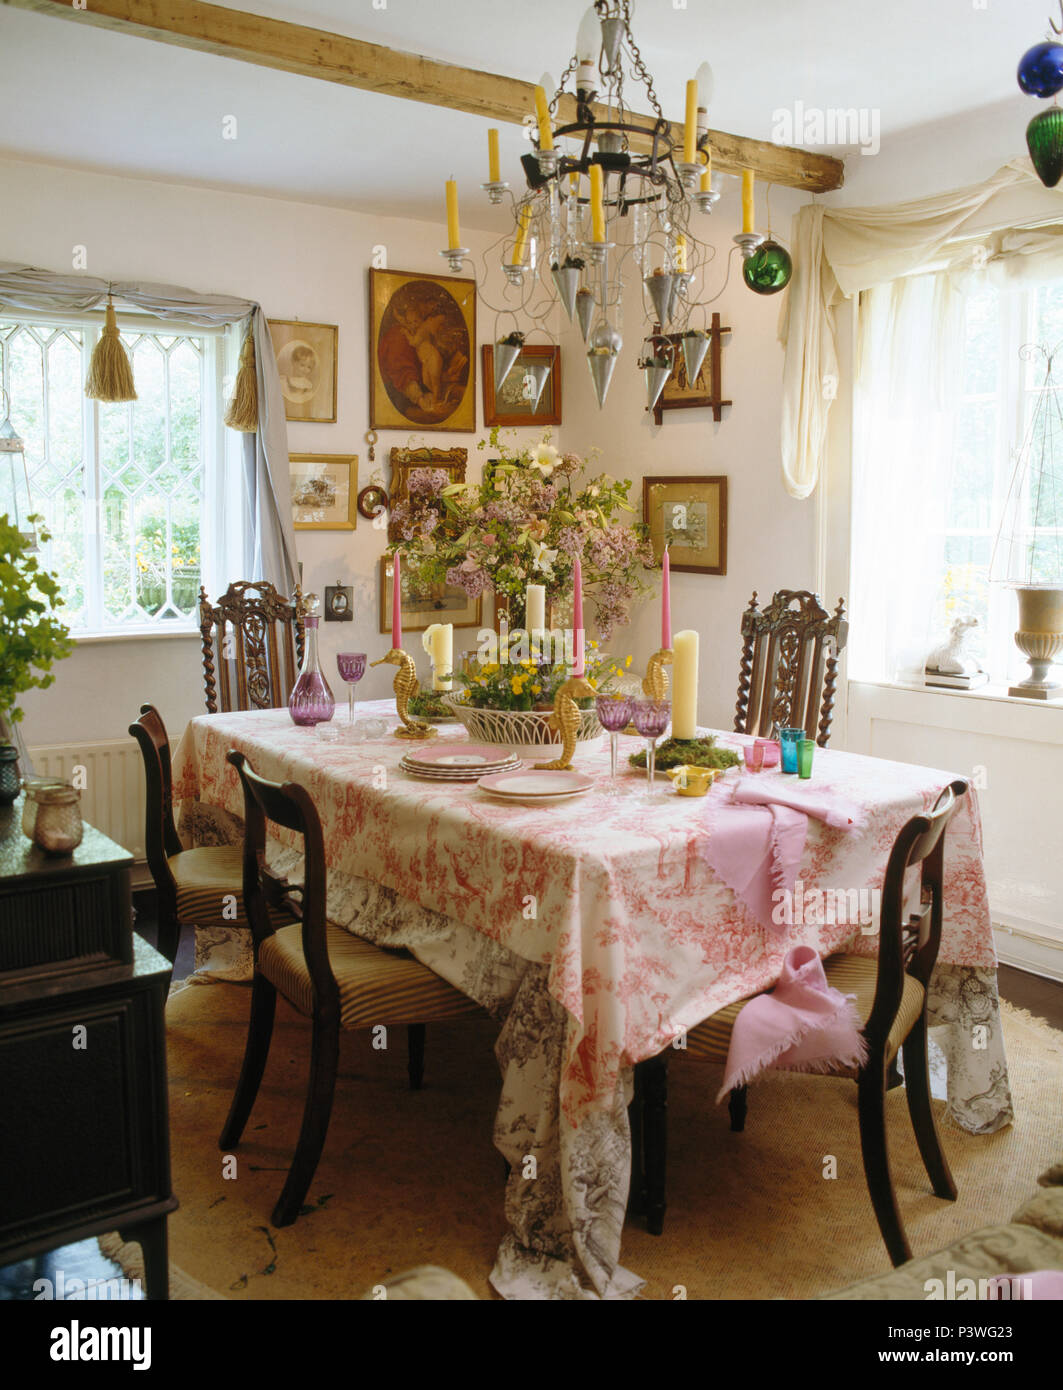 Miraculous Candle Chandelier Above Table With Pink Toile De Jouy Cloth Interior Design Ideas Tzicisoteloinfo